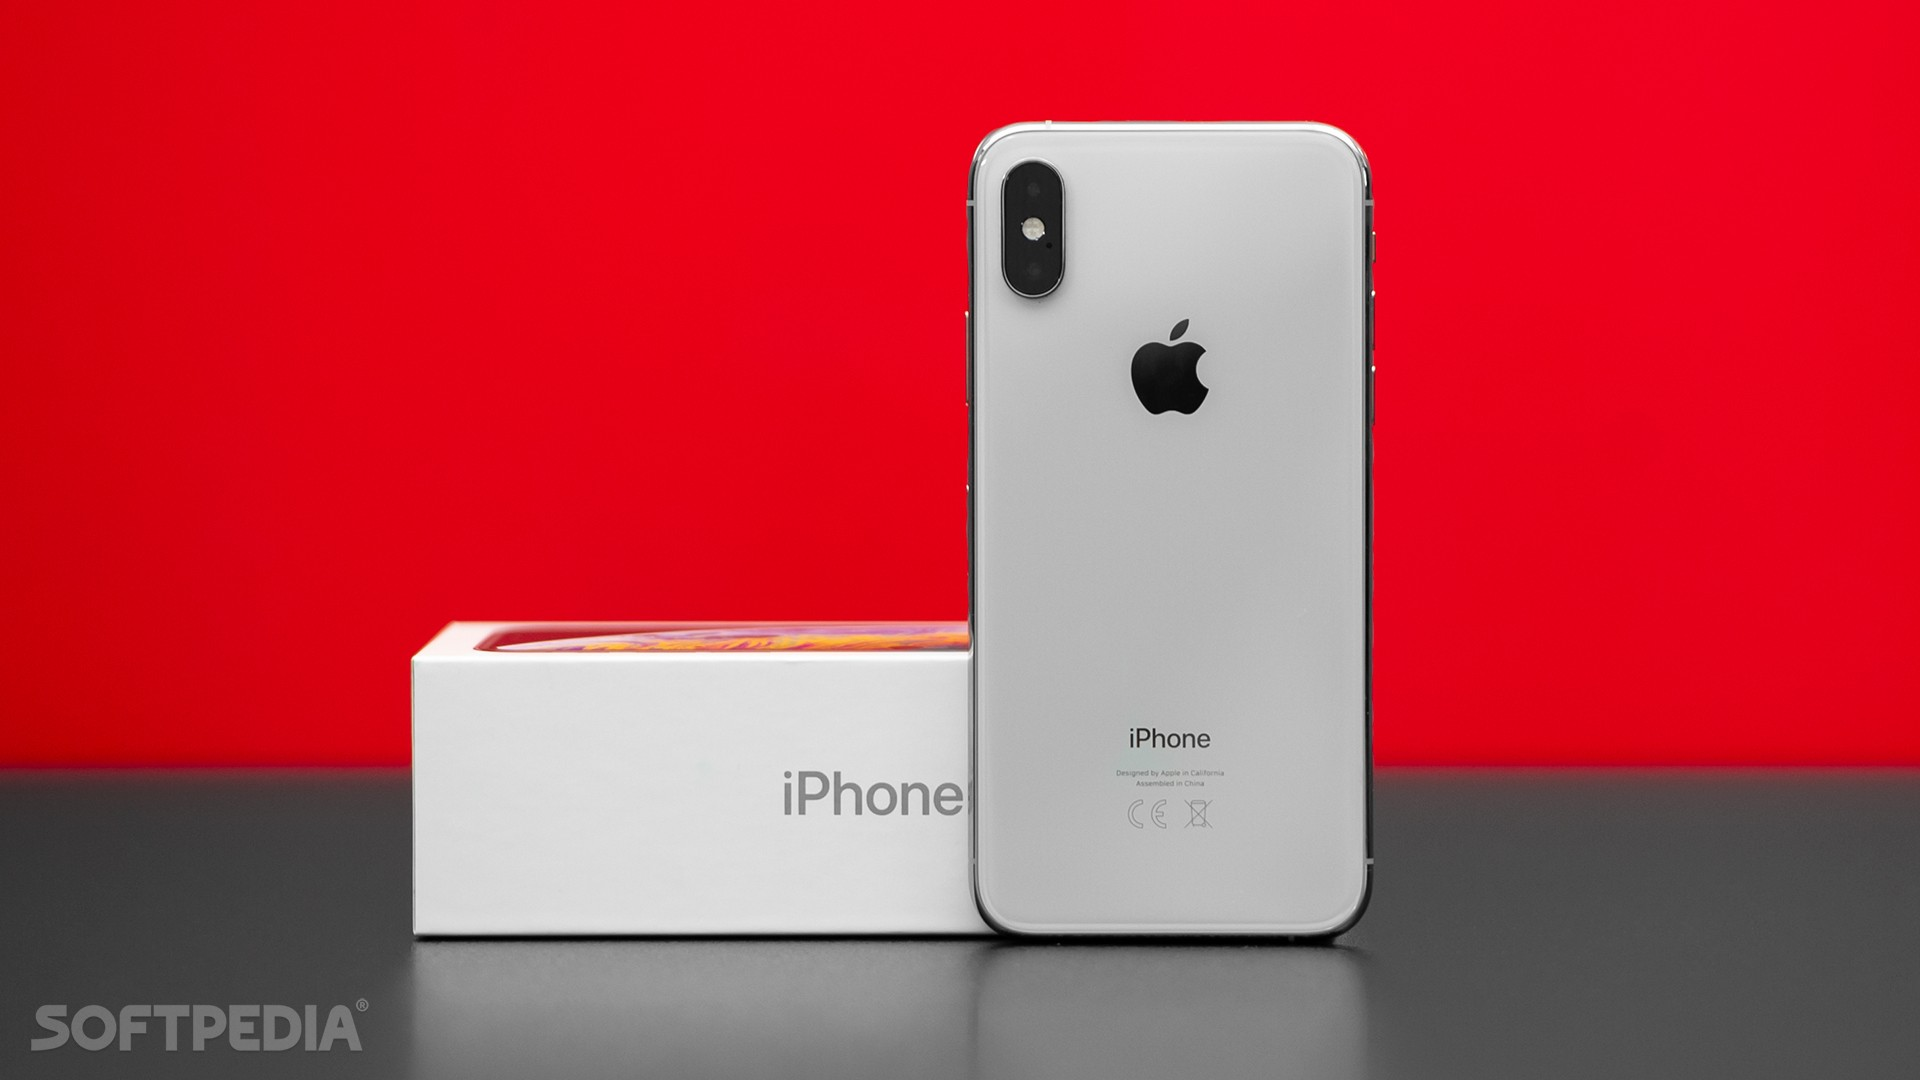 Apple's 2020 iPhone might reduce TrueDepth notch with smaller camera